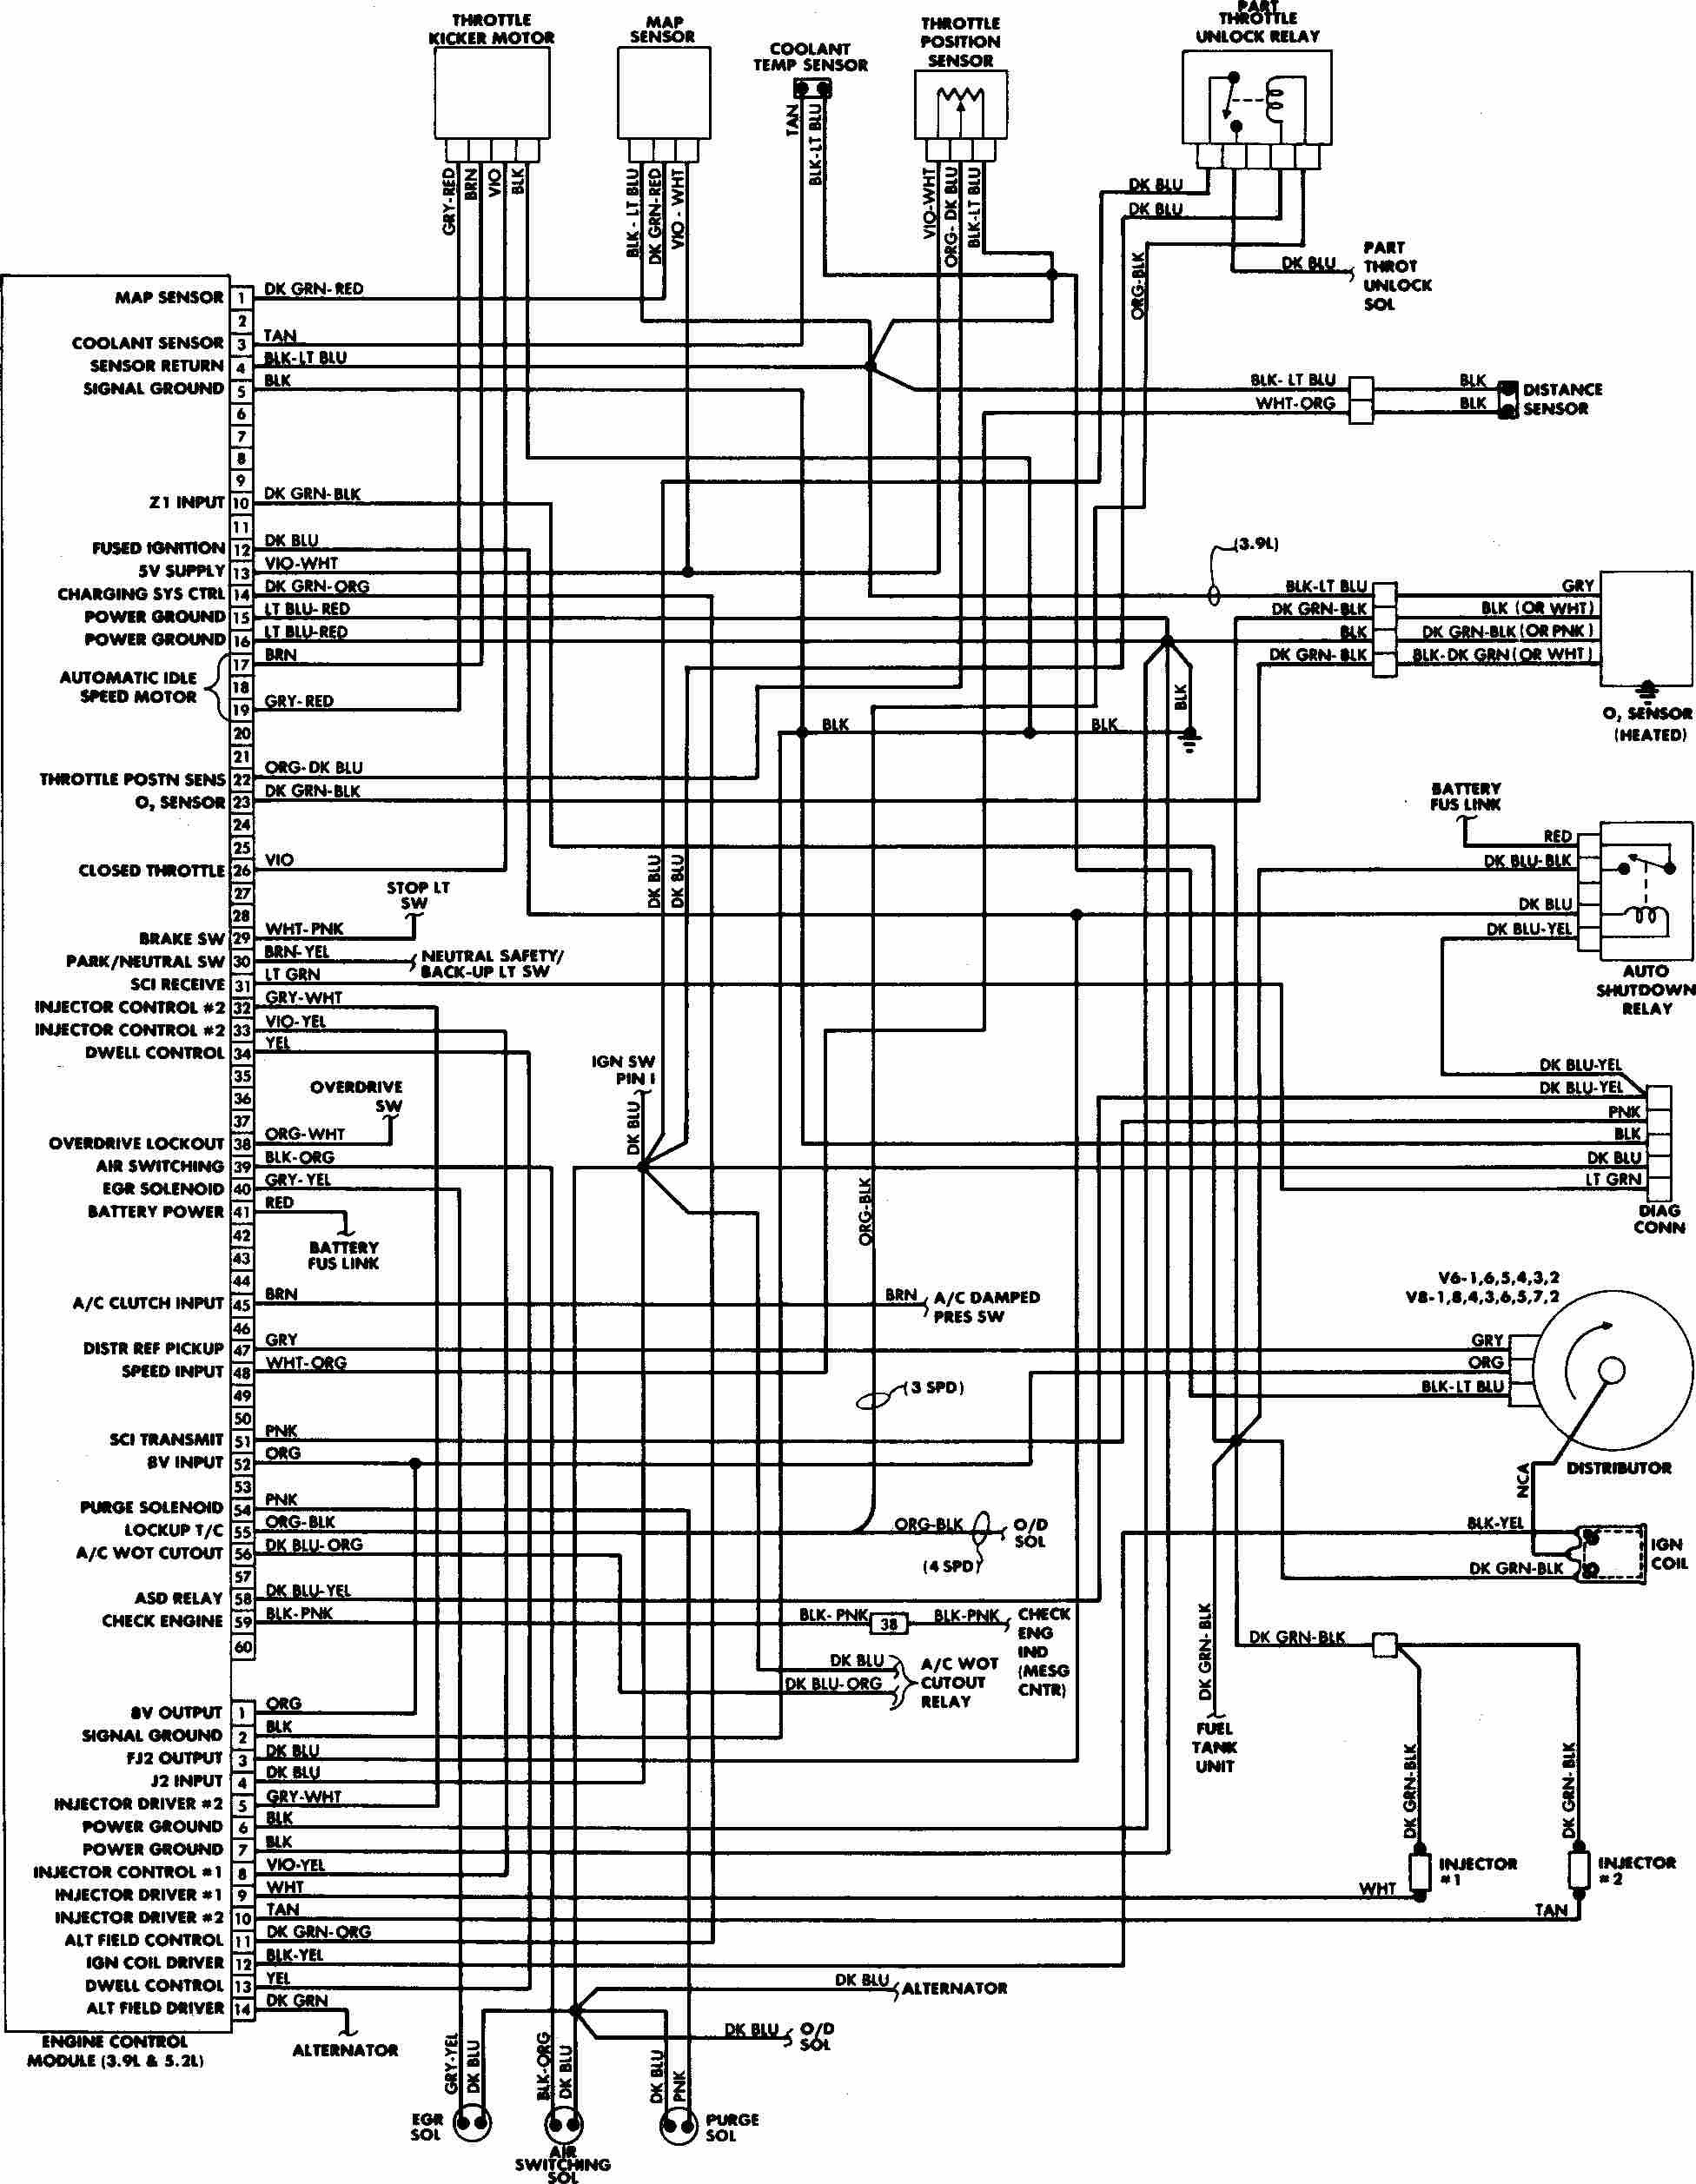 ram truck wiring diagram for 2014 ram truck wiring diagram